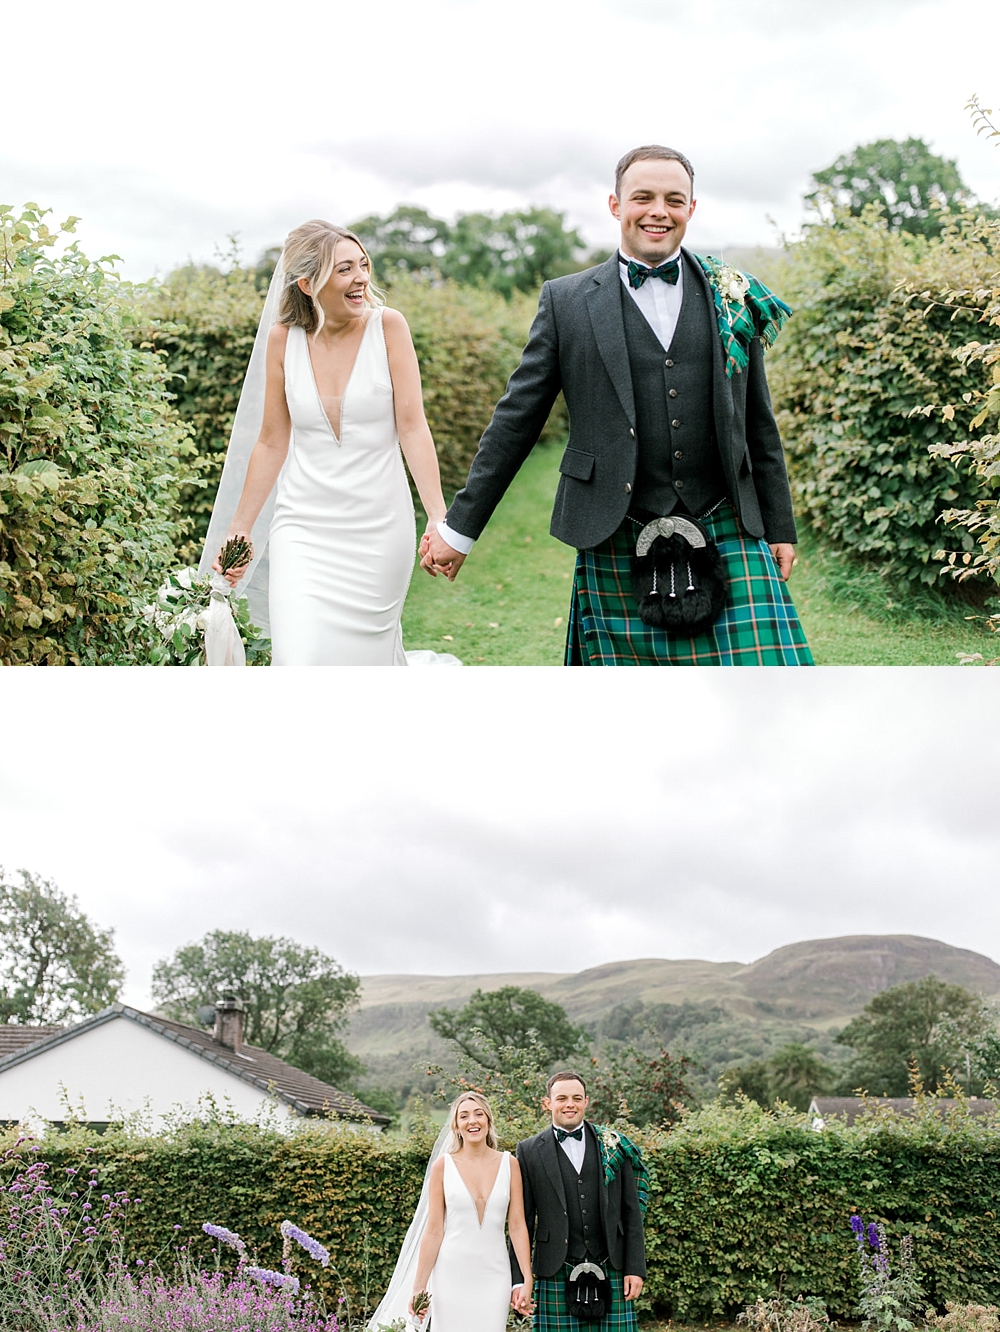 Fine Art Wedding Photographers,Glasgow Bride,The Gibsons,The Gibsons: Glasgow Photographers,alternative bride,colourful wedding photographers,knockraich farm wedding,light and bright,light and bright wedding photographers scotland,natural wedding photographers,romantic photographers Scotland,